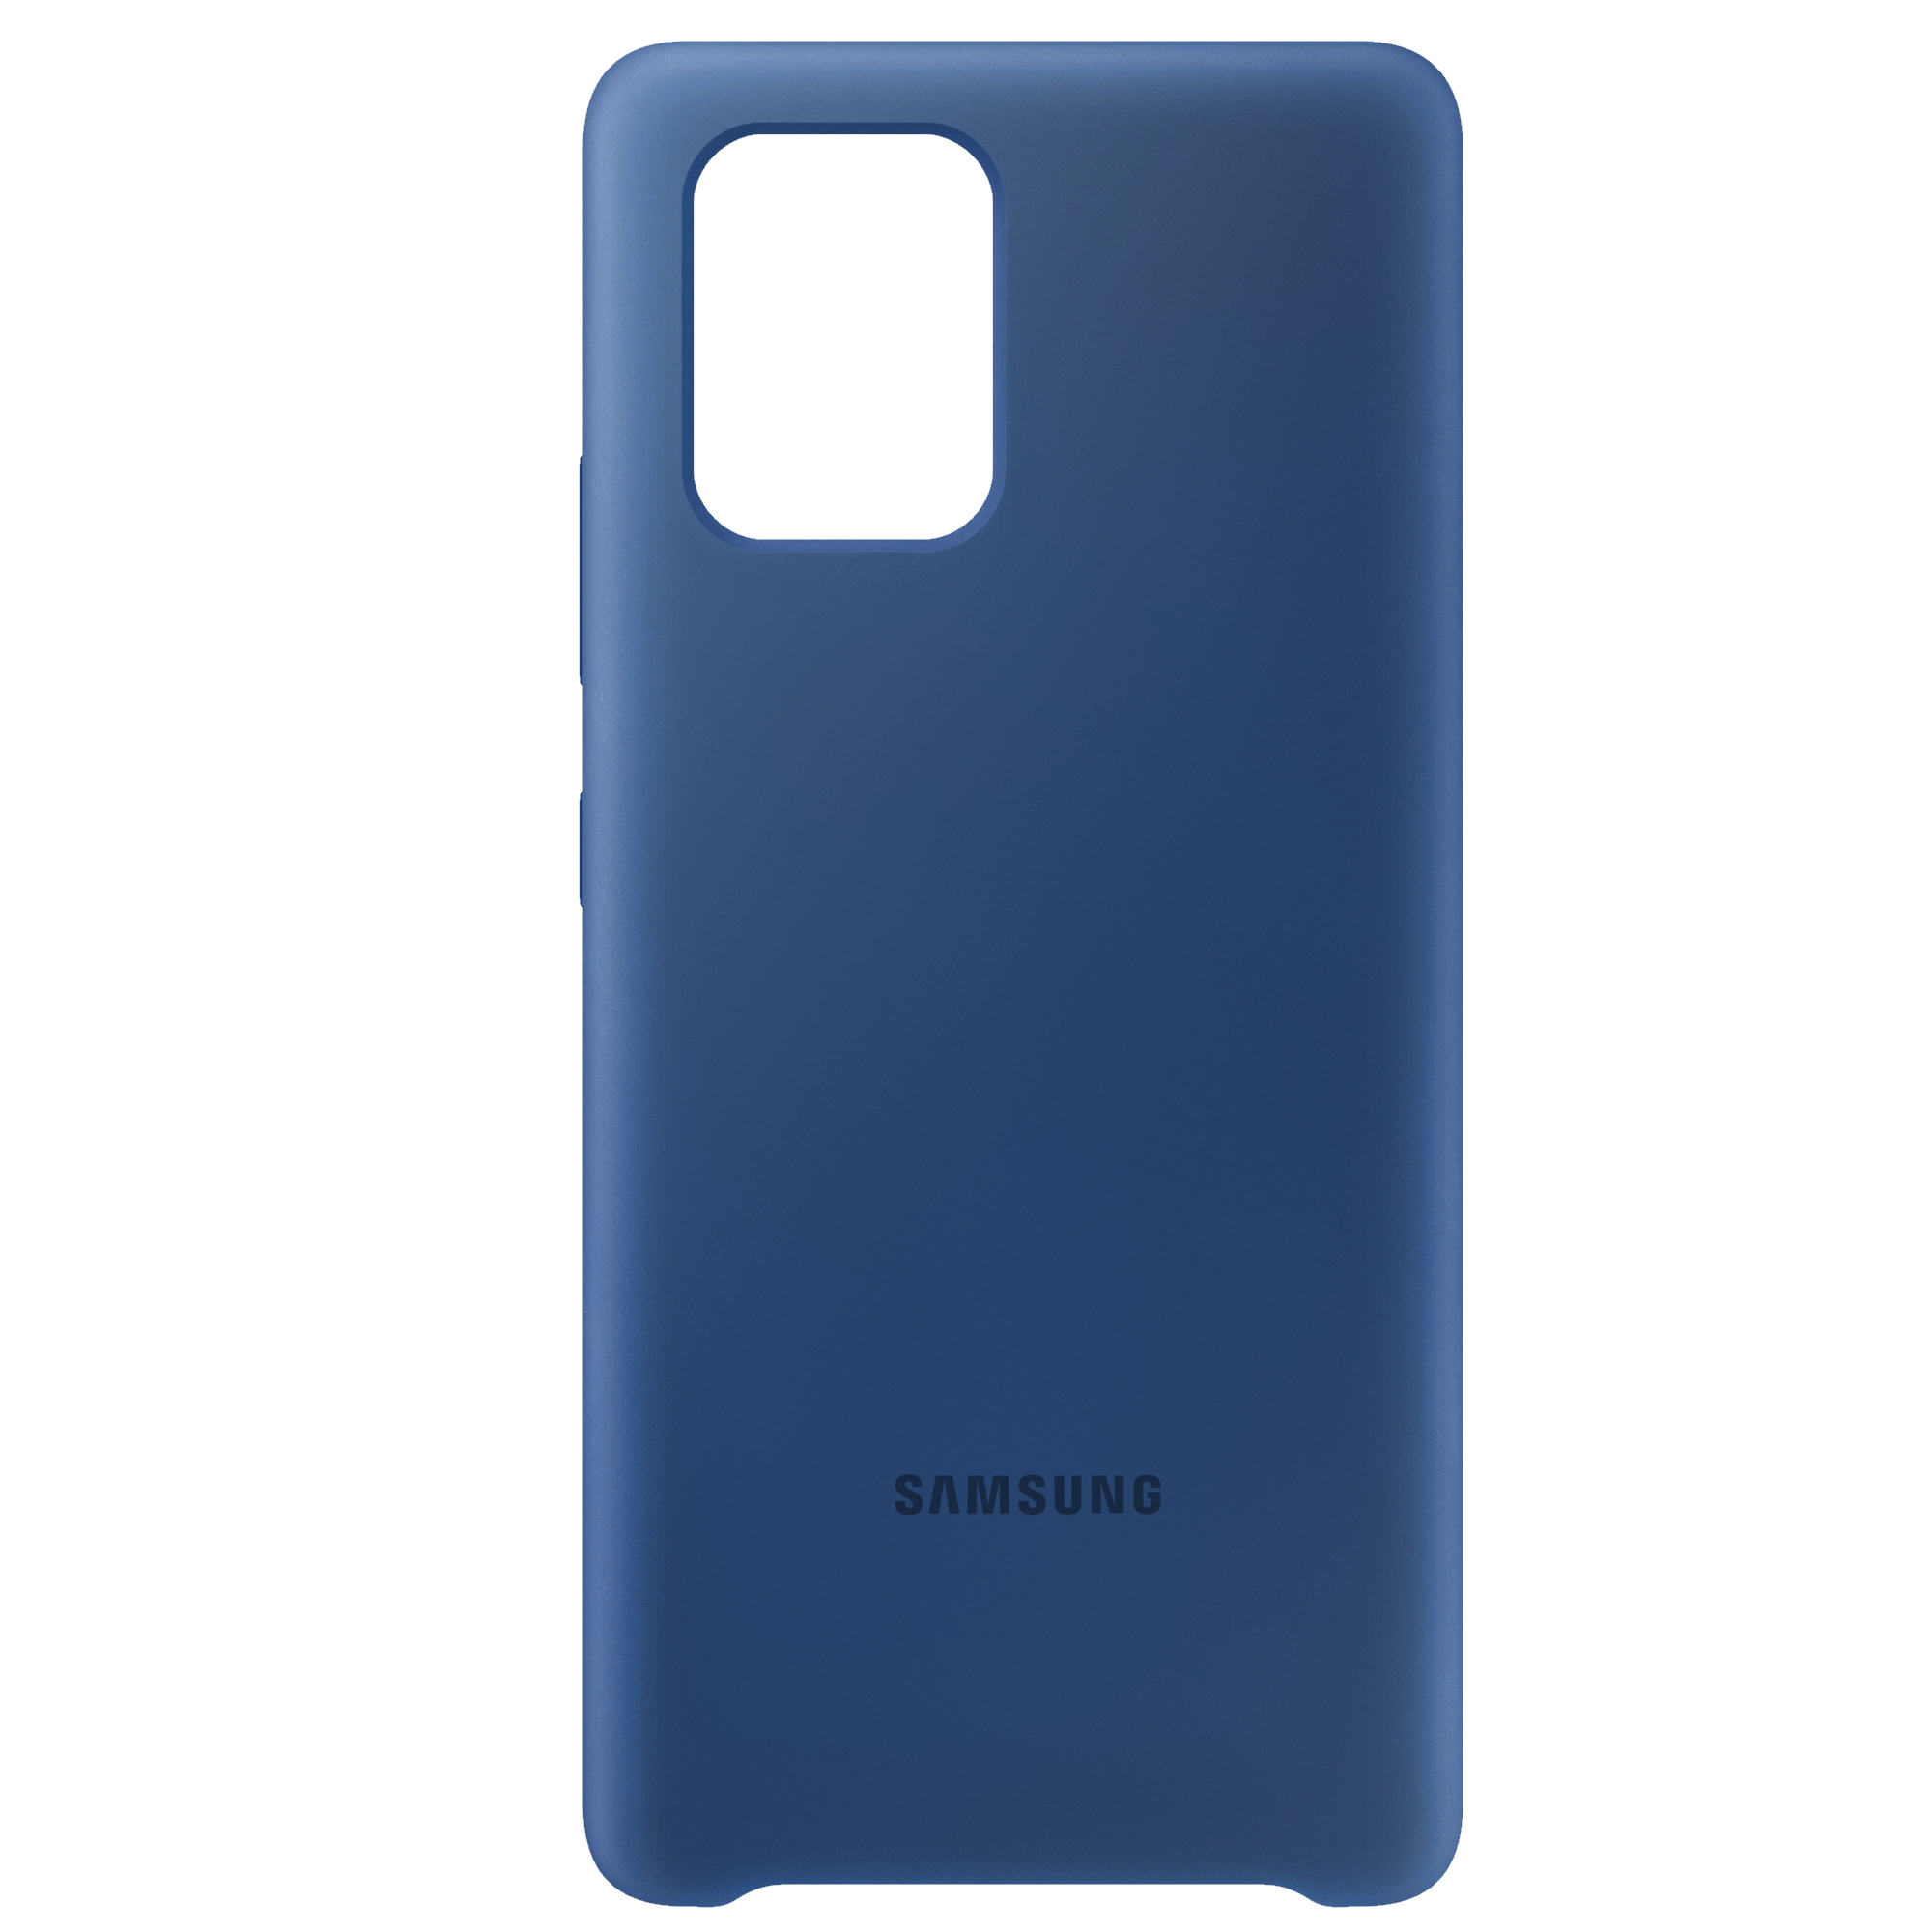 Capac protectie spate Samsung Silicone Cover EF-PG770 pentru Galaxy S10 Lite (G770) Blue